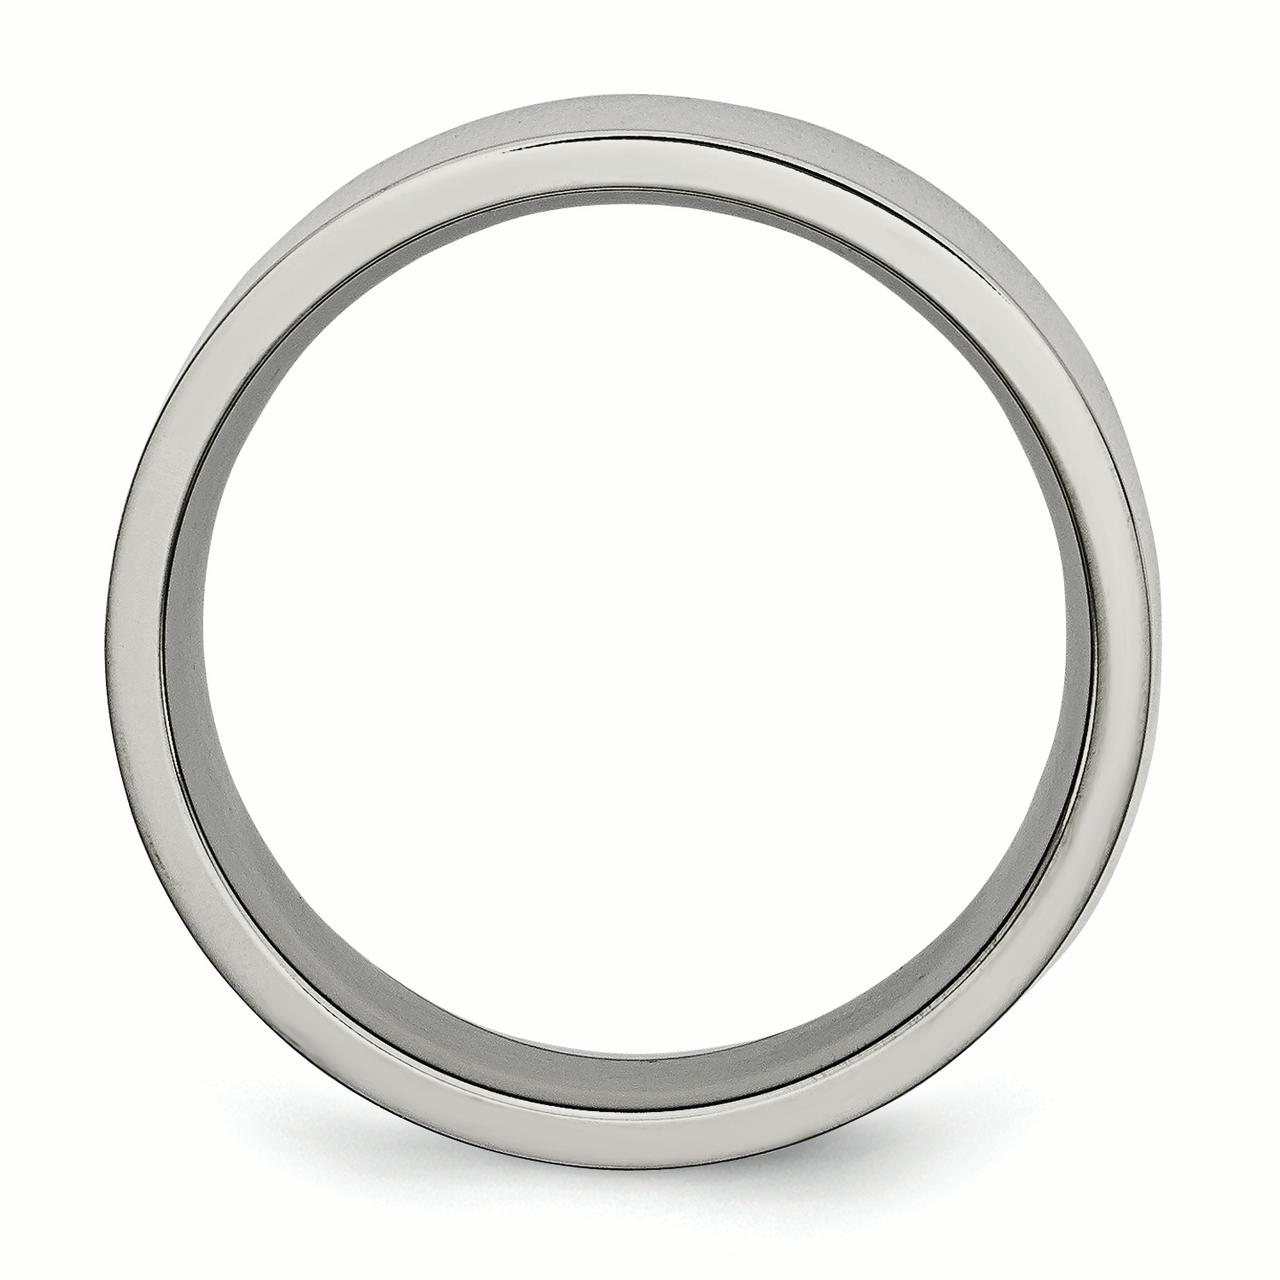 Titanium Flat 8mm Wedding Ring Band Size 9.50 Classic Fashion Jewelry Gifts For Women For Her - image 6 of 7